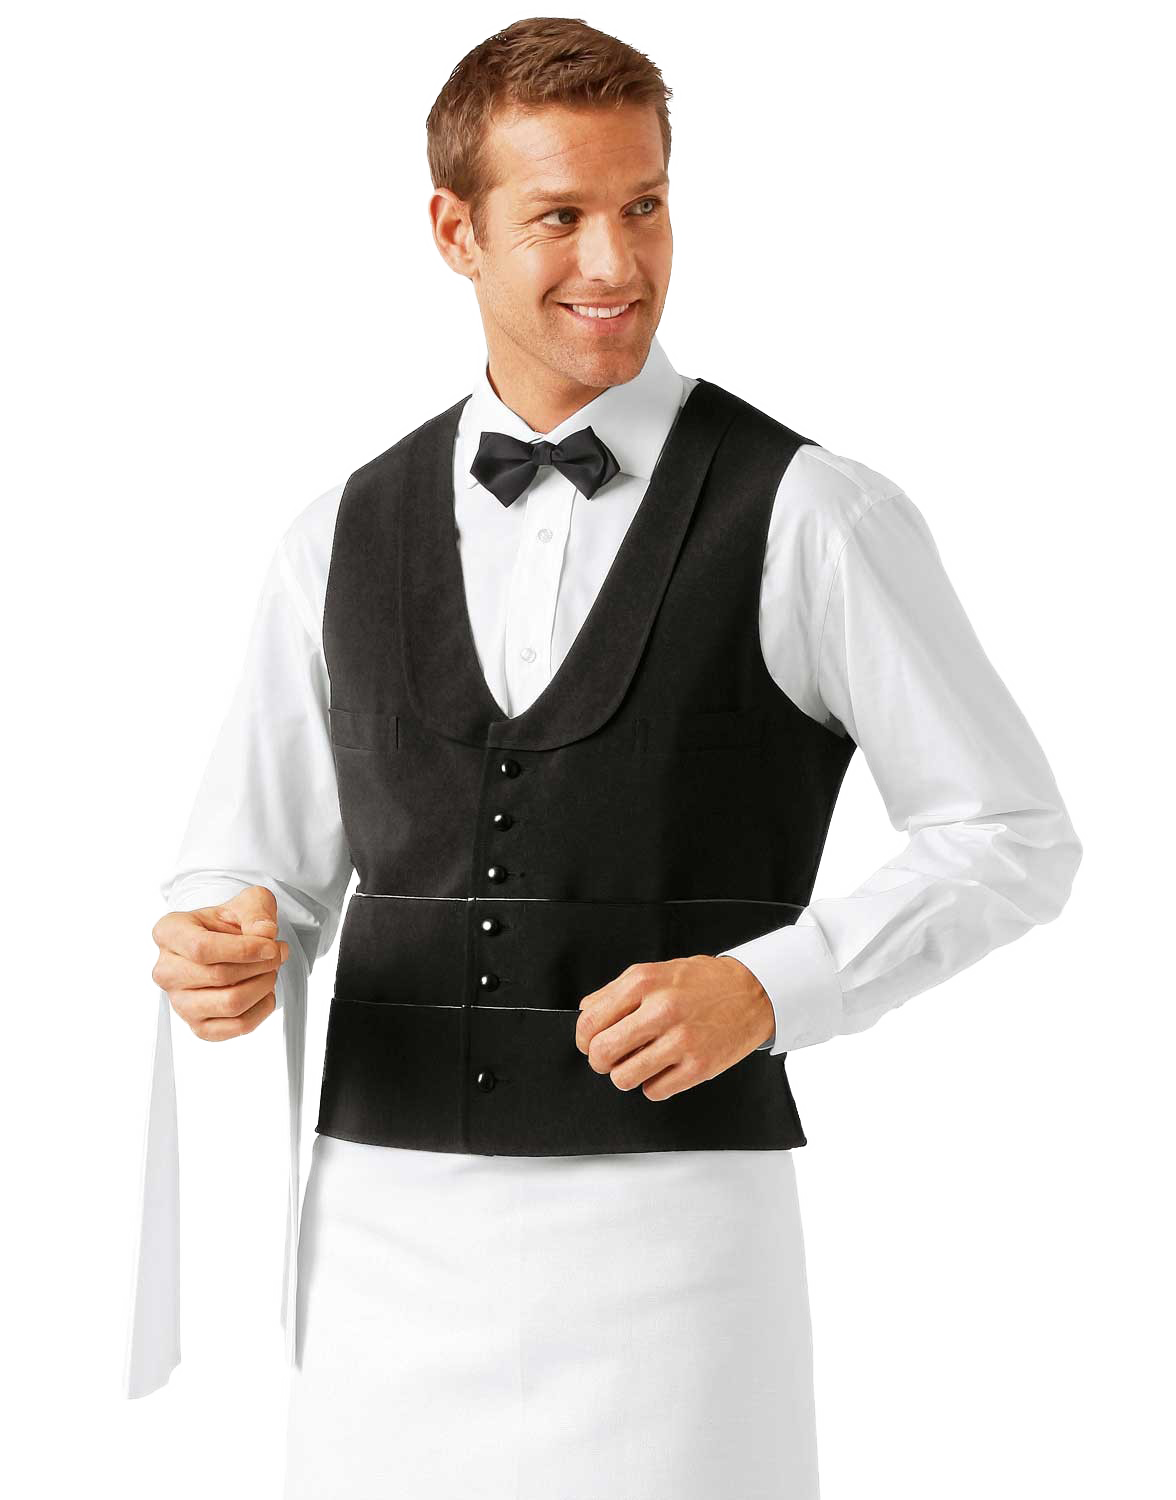 Waiter Uniform - Formal | Hospitality Uniforms | TSI Apparel